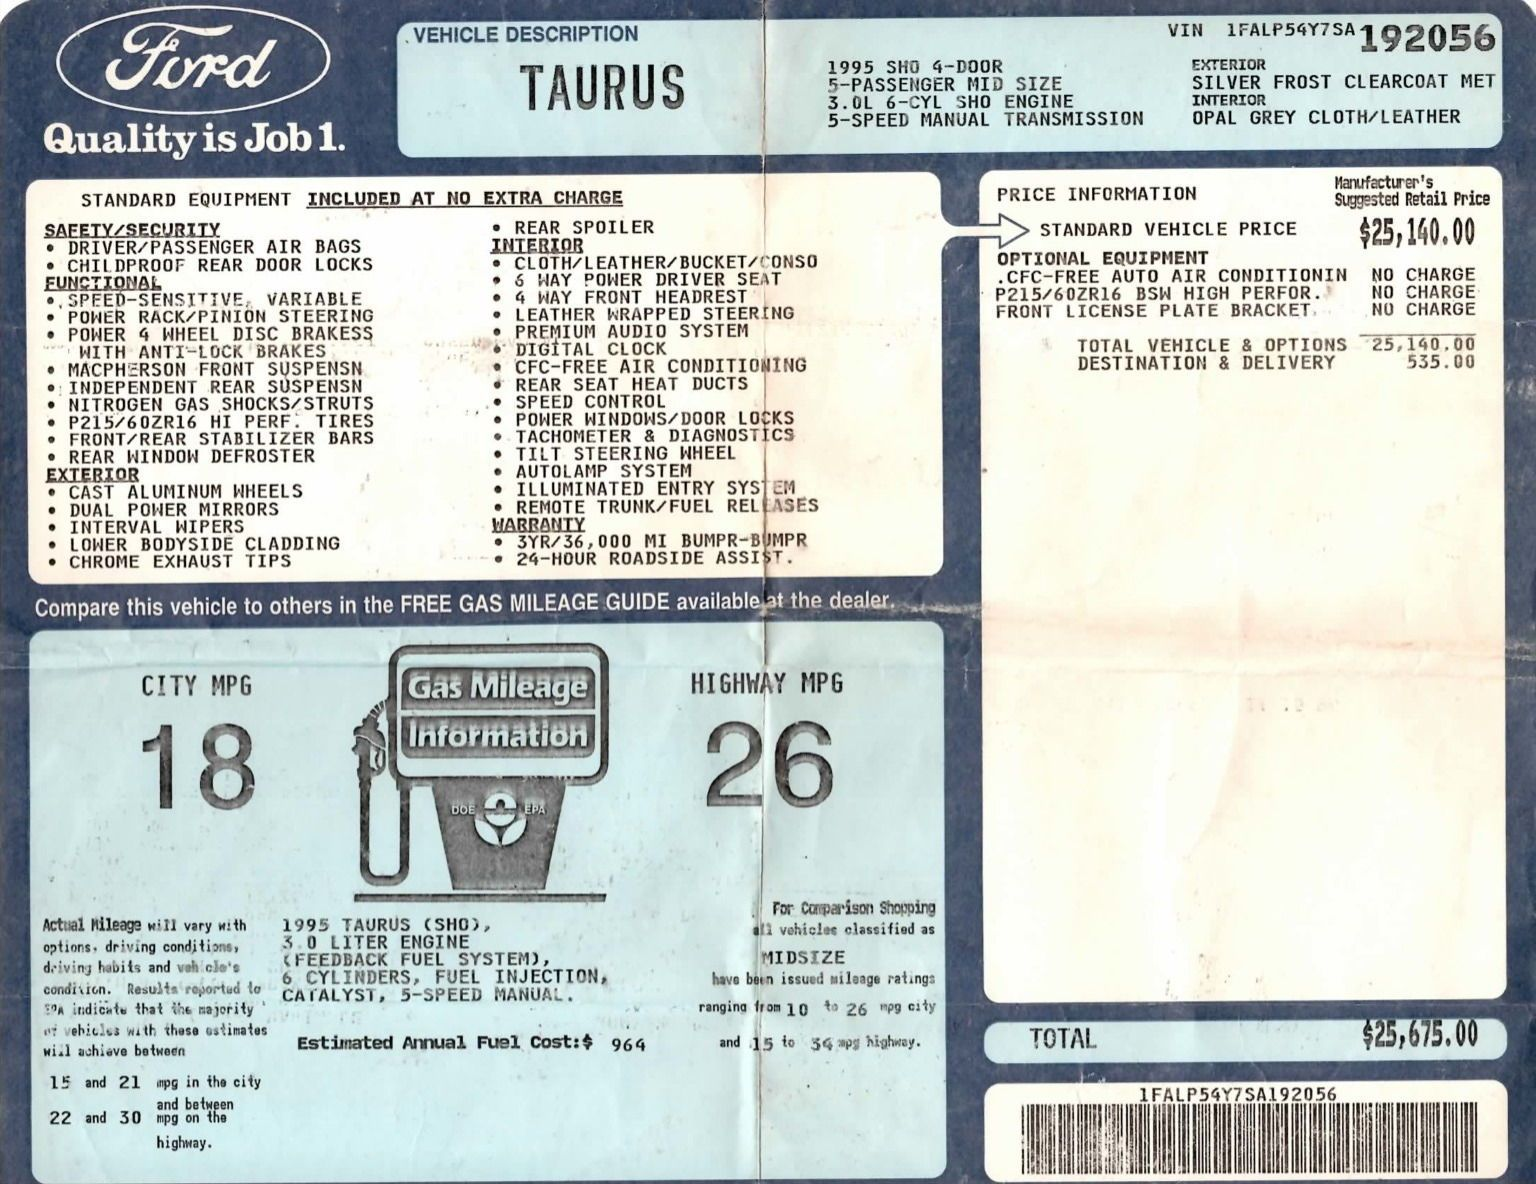 1995 Ford Taurus Sho Window Sticker Ford Taurus Sho Ford Taurus